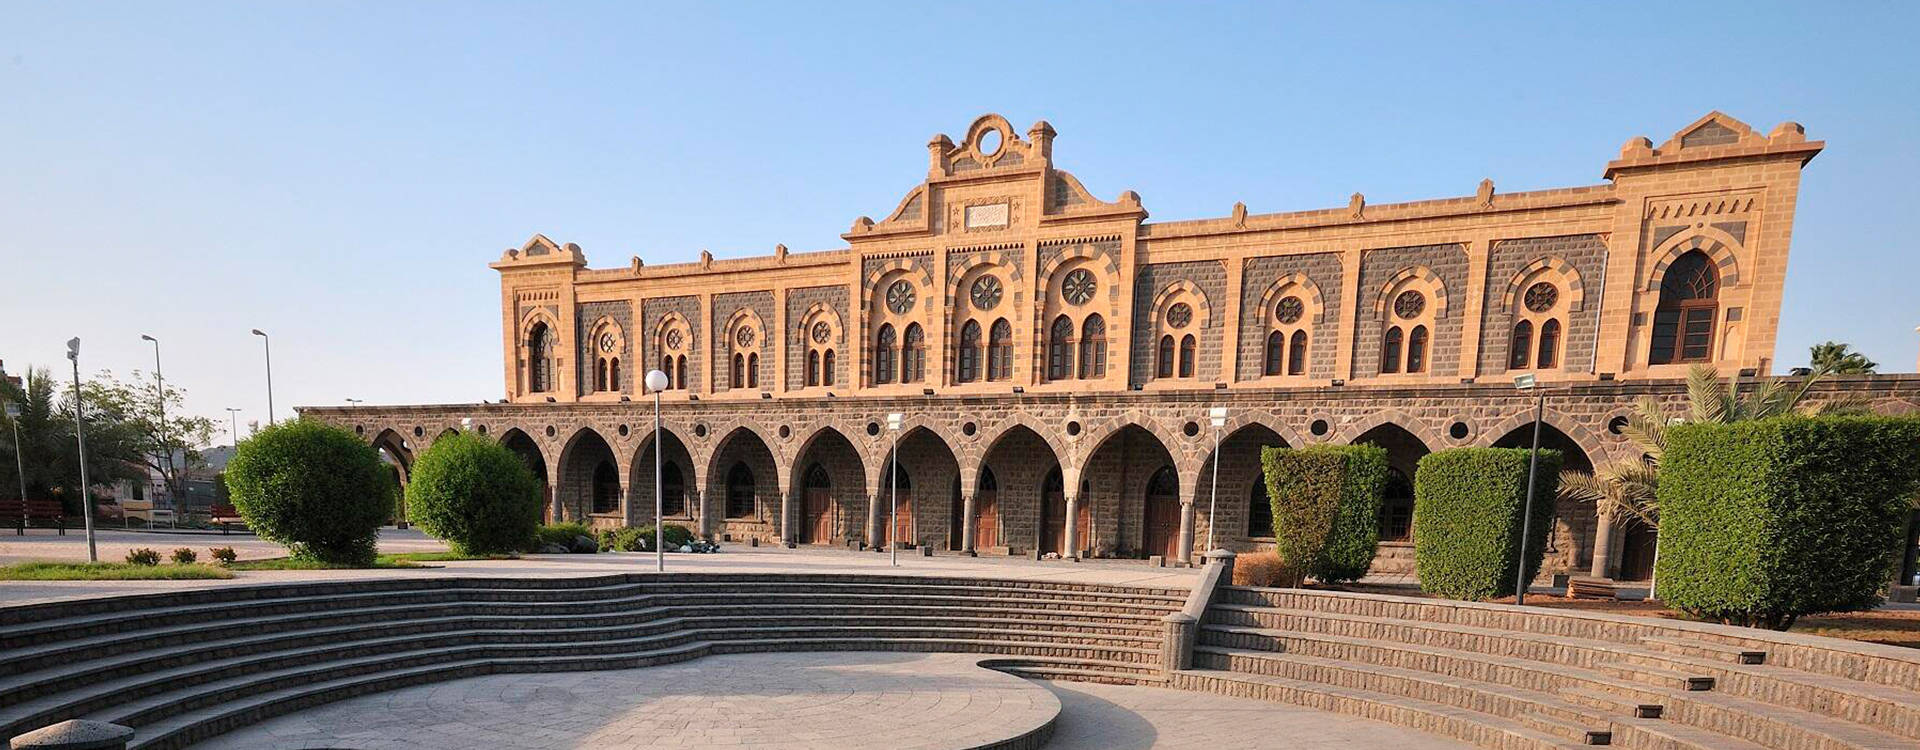 Al-Madina Museum in saudi arabia tour packages from Bangalore, india